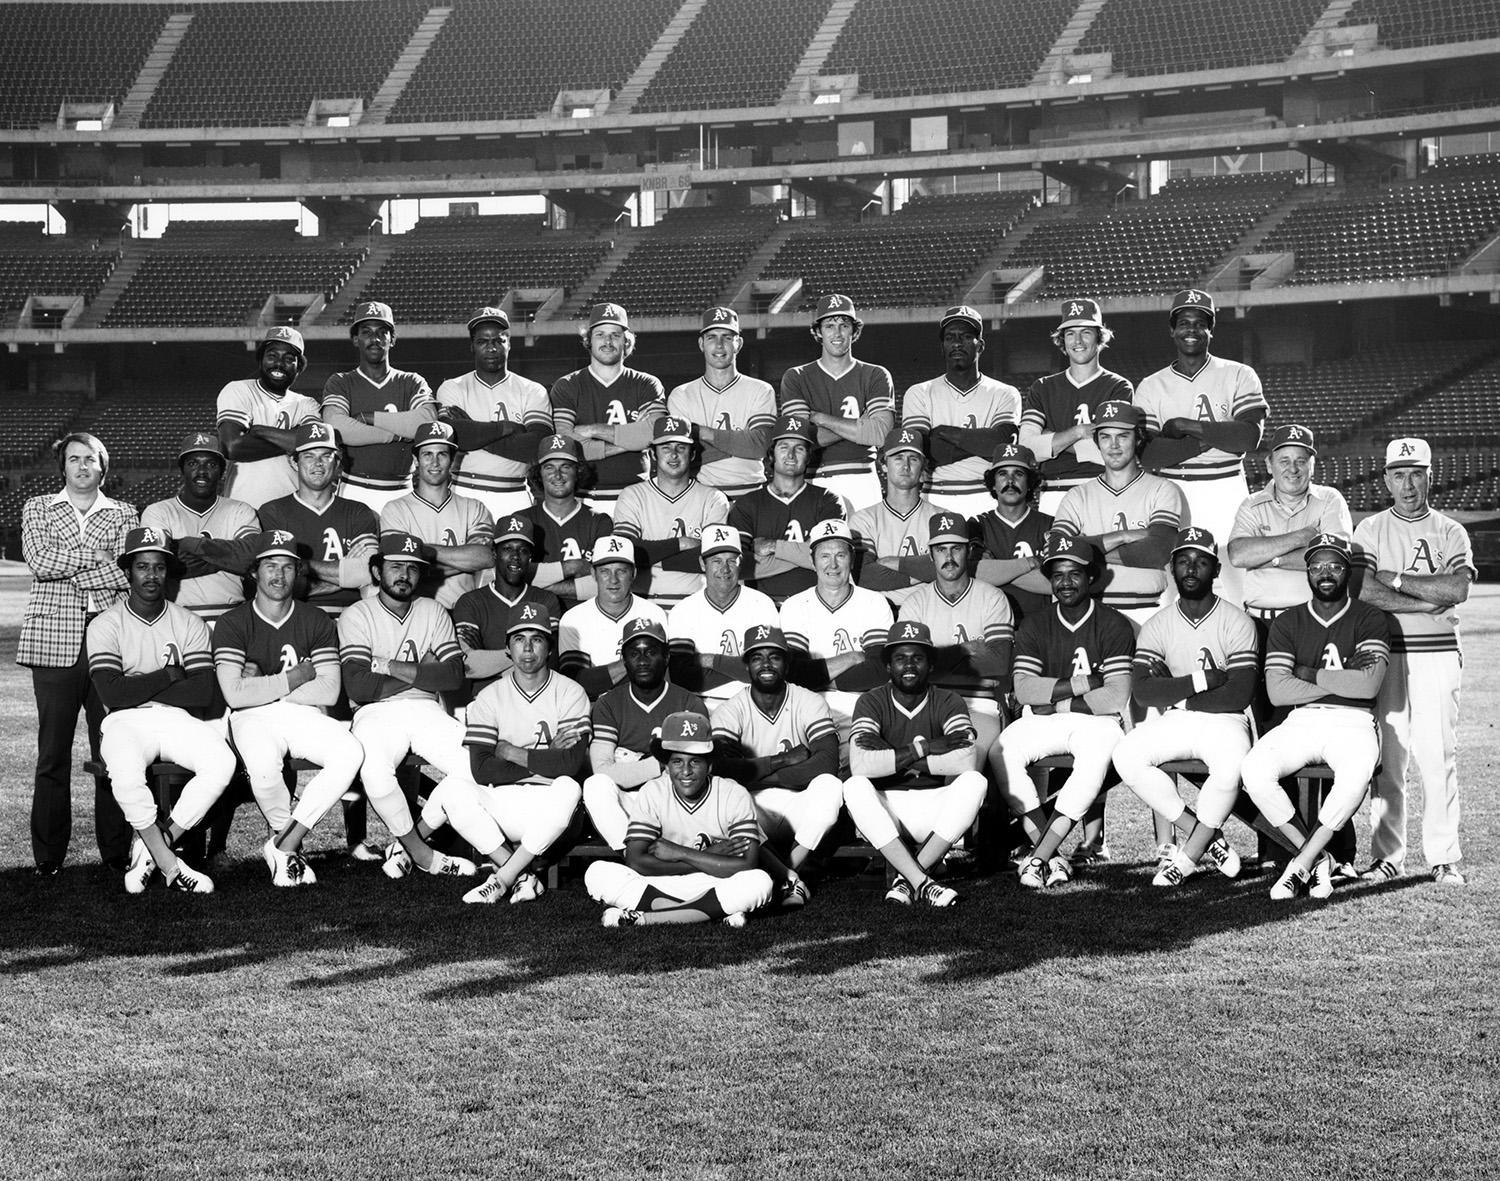 The Oakland A's won three straight World Series, from 1972-74. The team photo pictured above is from 1977. (National Baseball Hall of Fame and Museum)